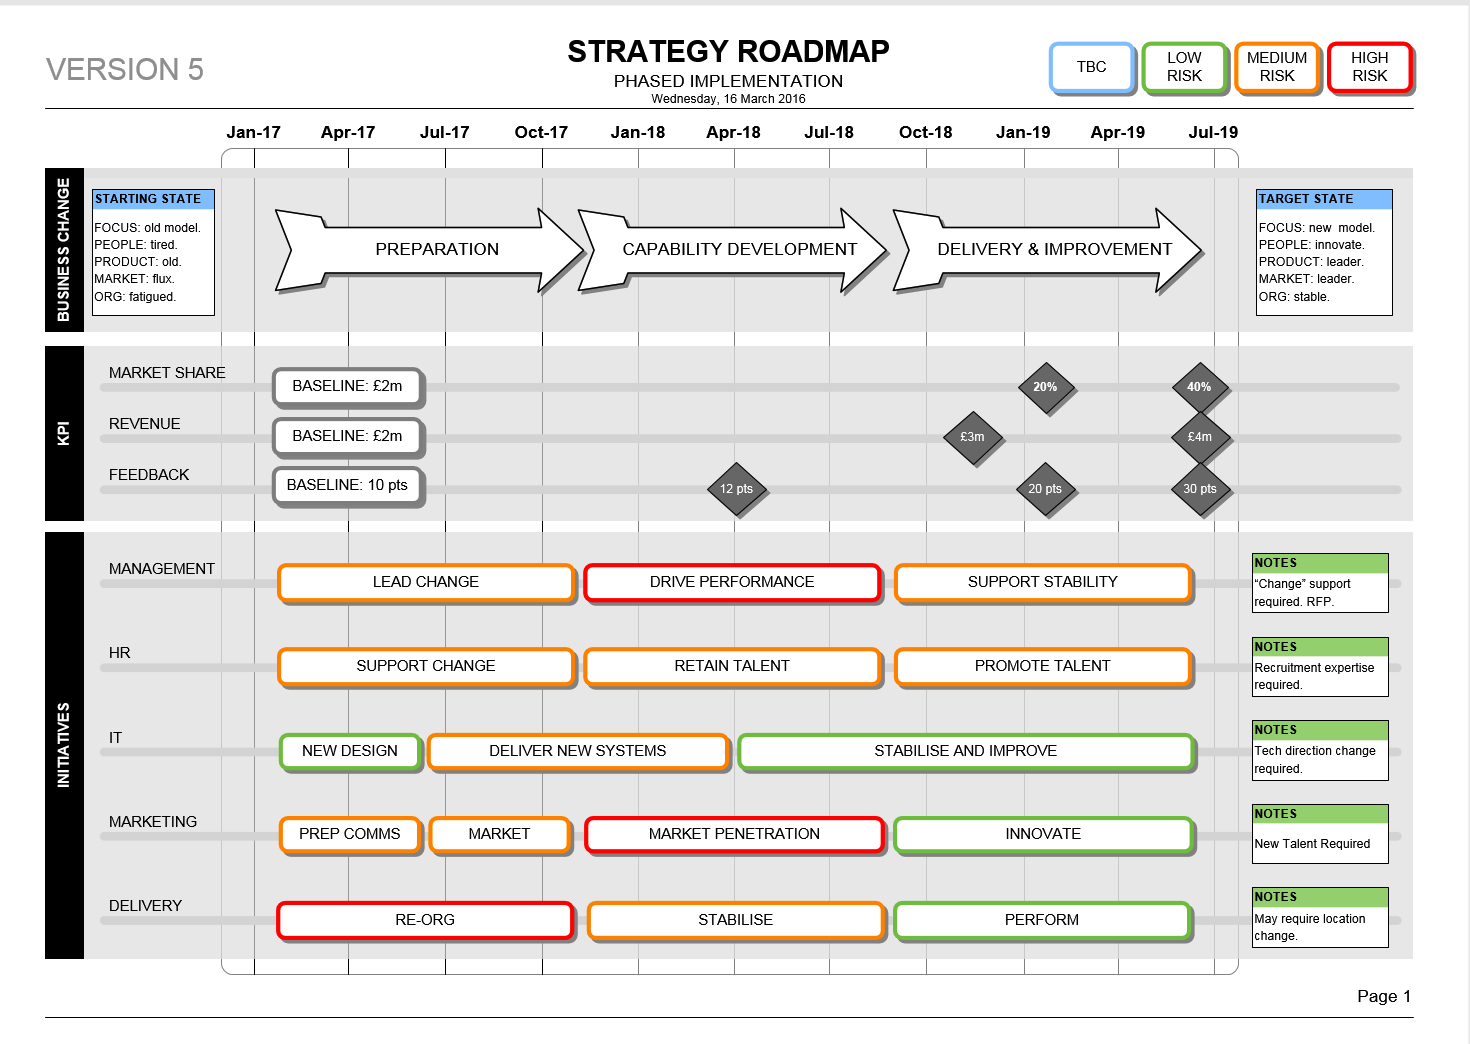 Strategy Roadmap Template Visio Pinterest Timeline Template - It roadmap template visio